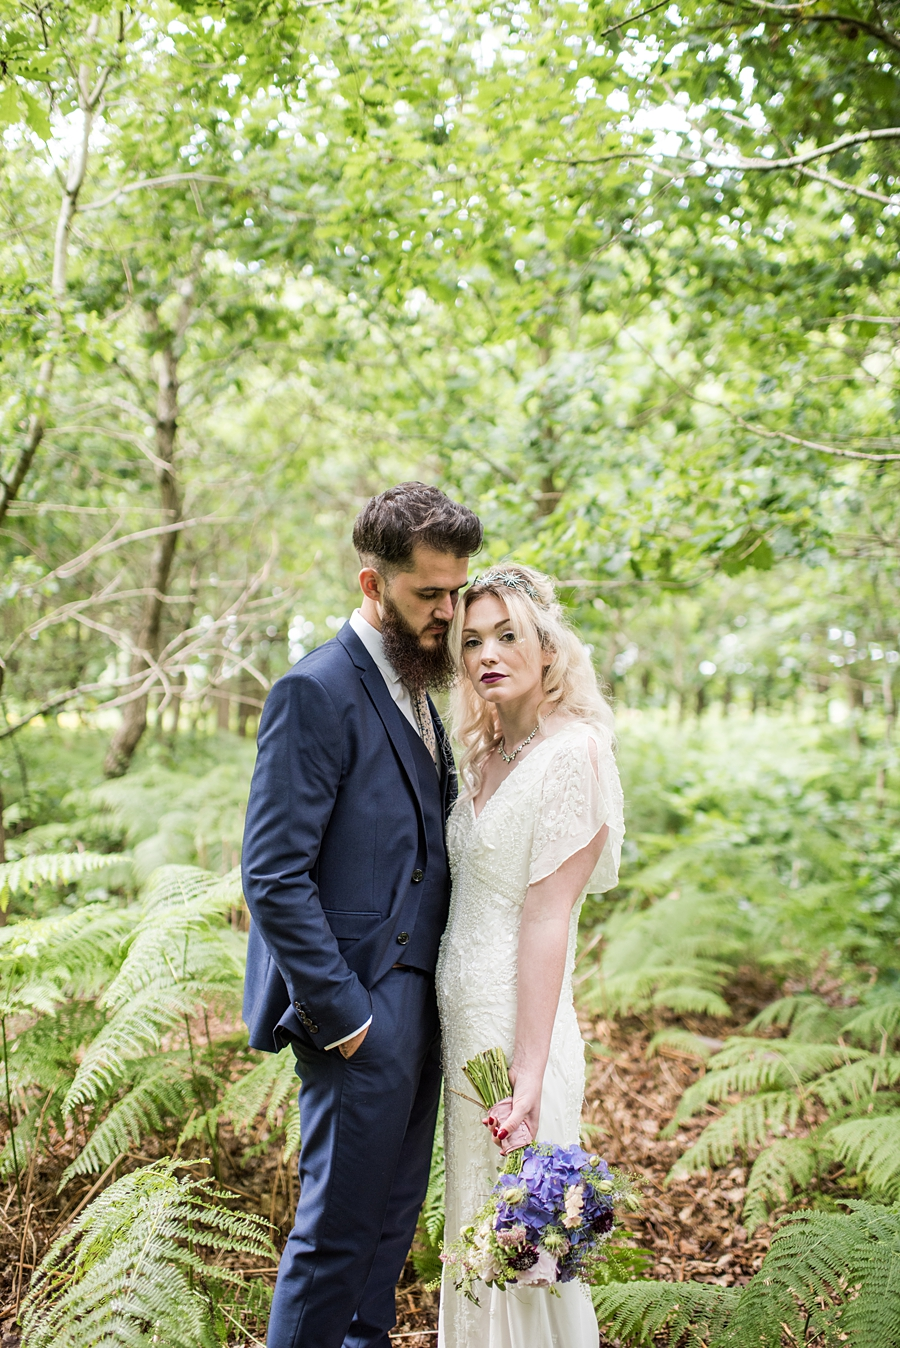 Jane Beadnell Photography – Northstar Styled Shoot-_0056